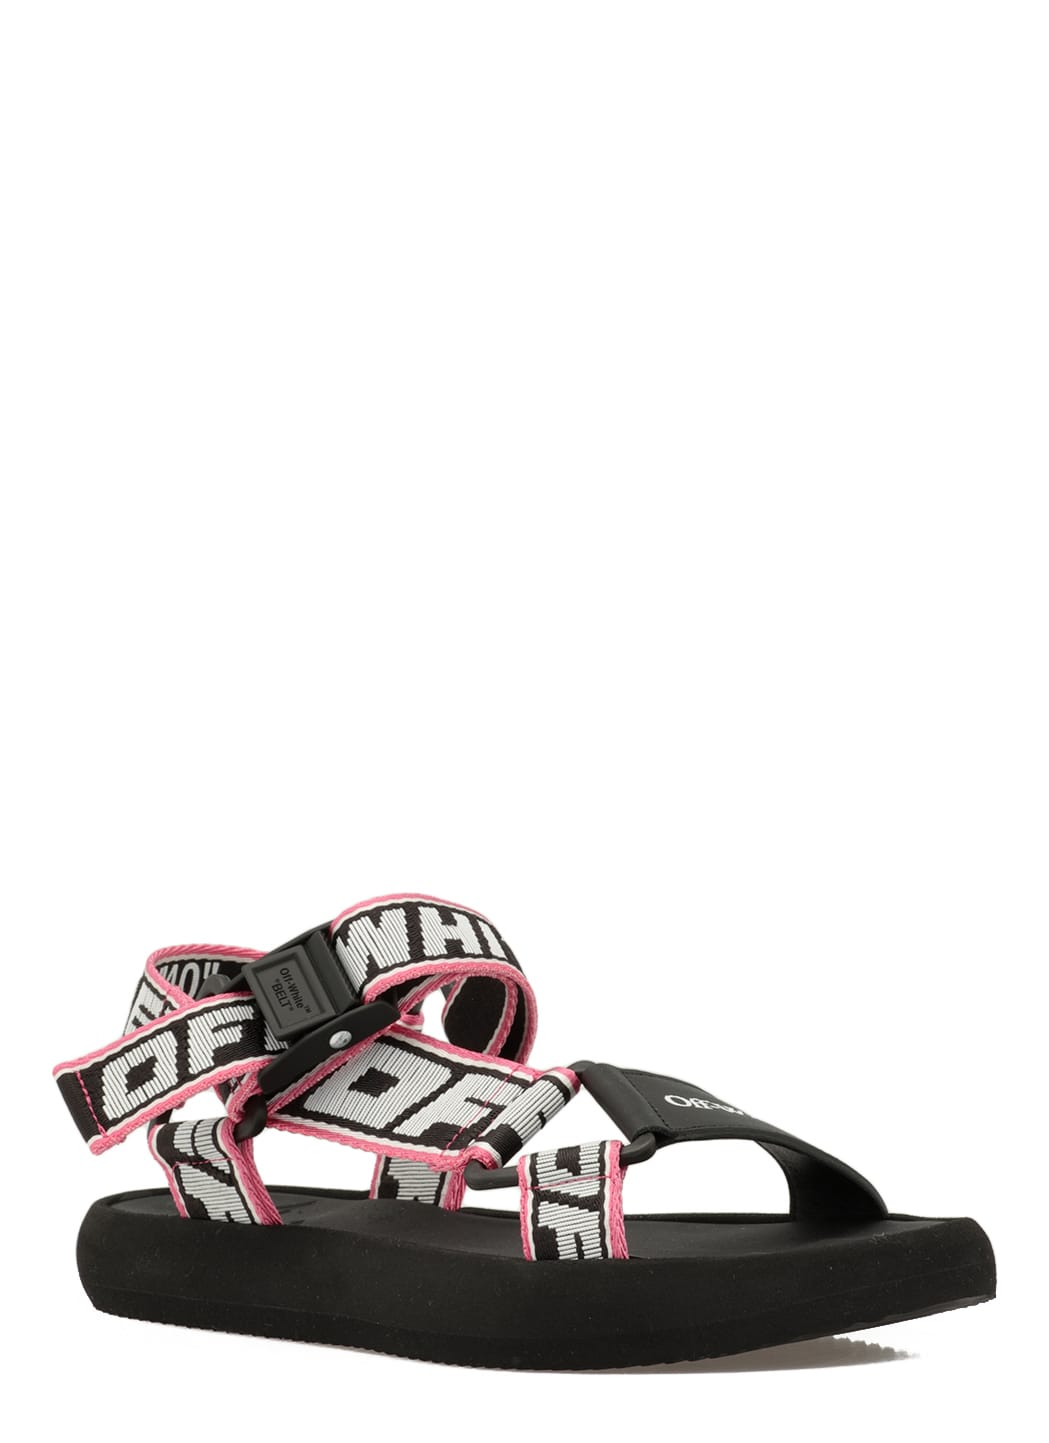 Off-White Sandals LEATHER AND FABRIC SANDAL